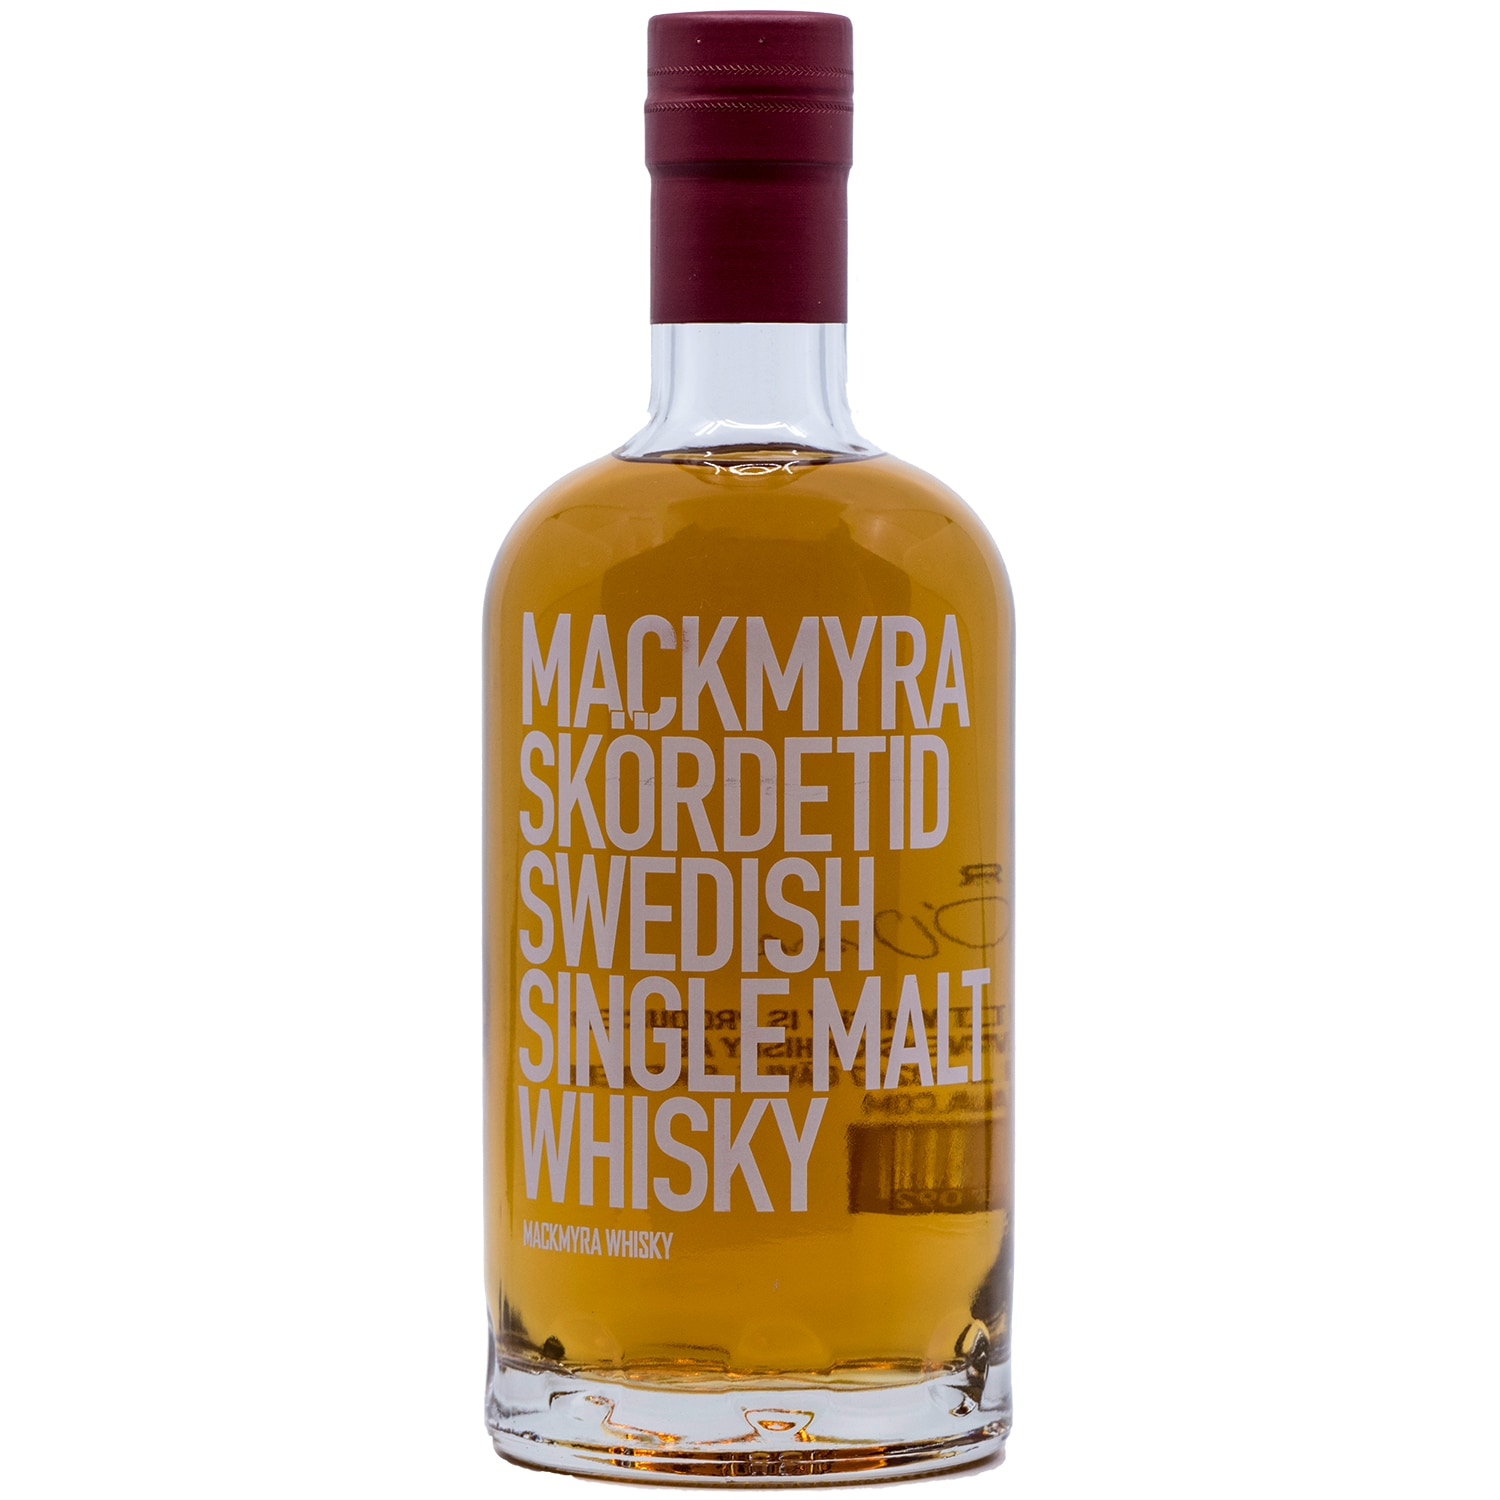 Mackmyra Skördetid Swedish Single Malt Whisky 70cl